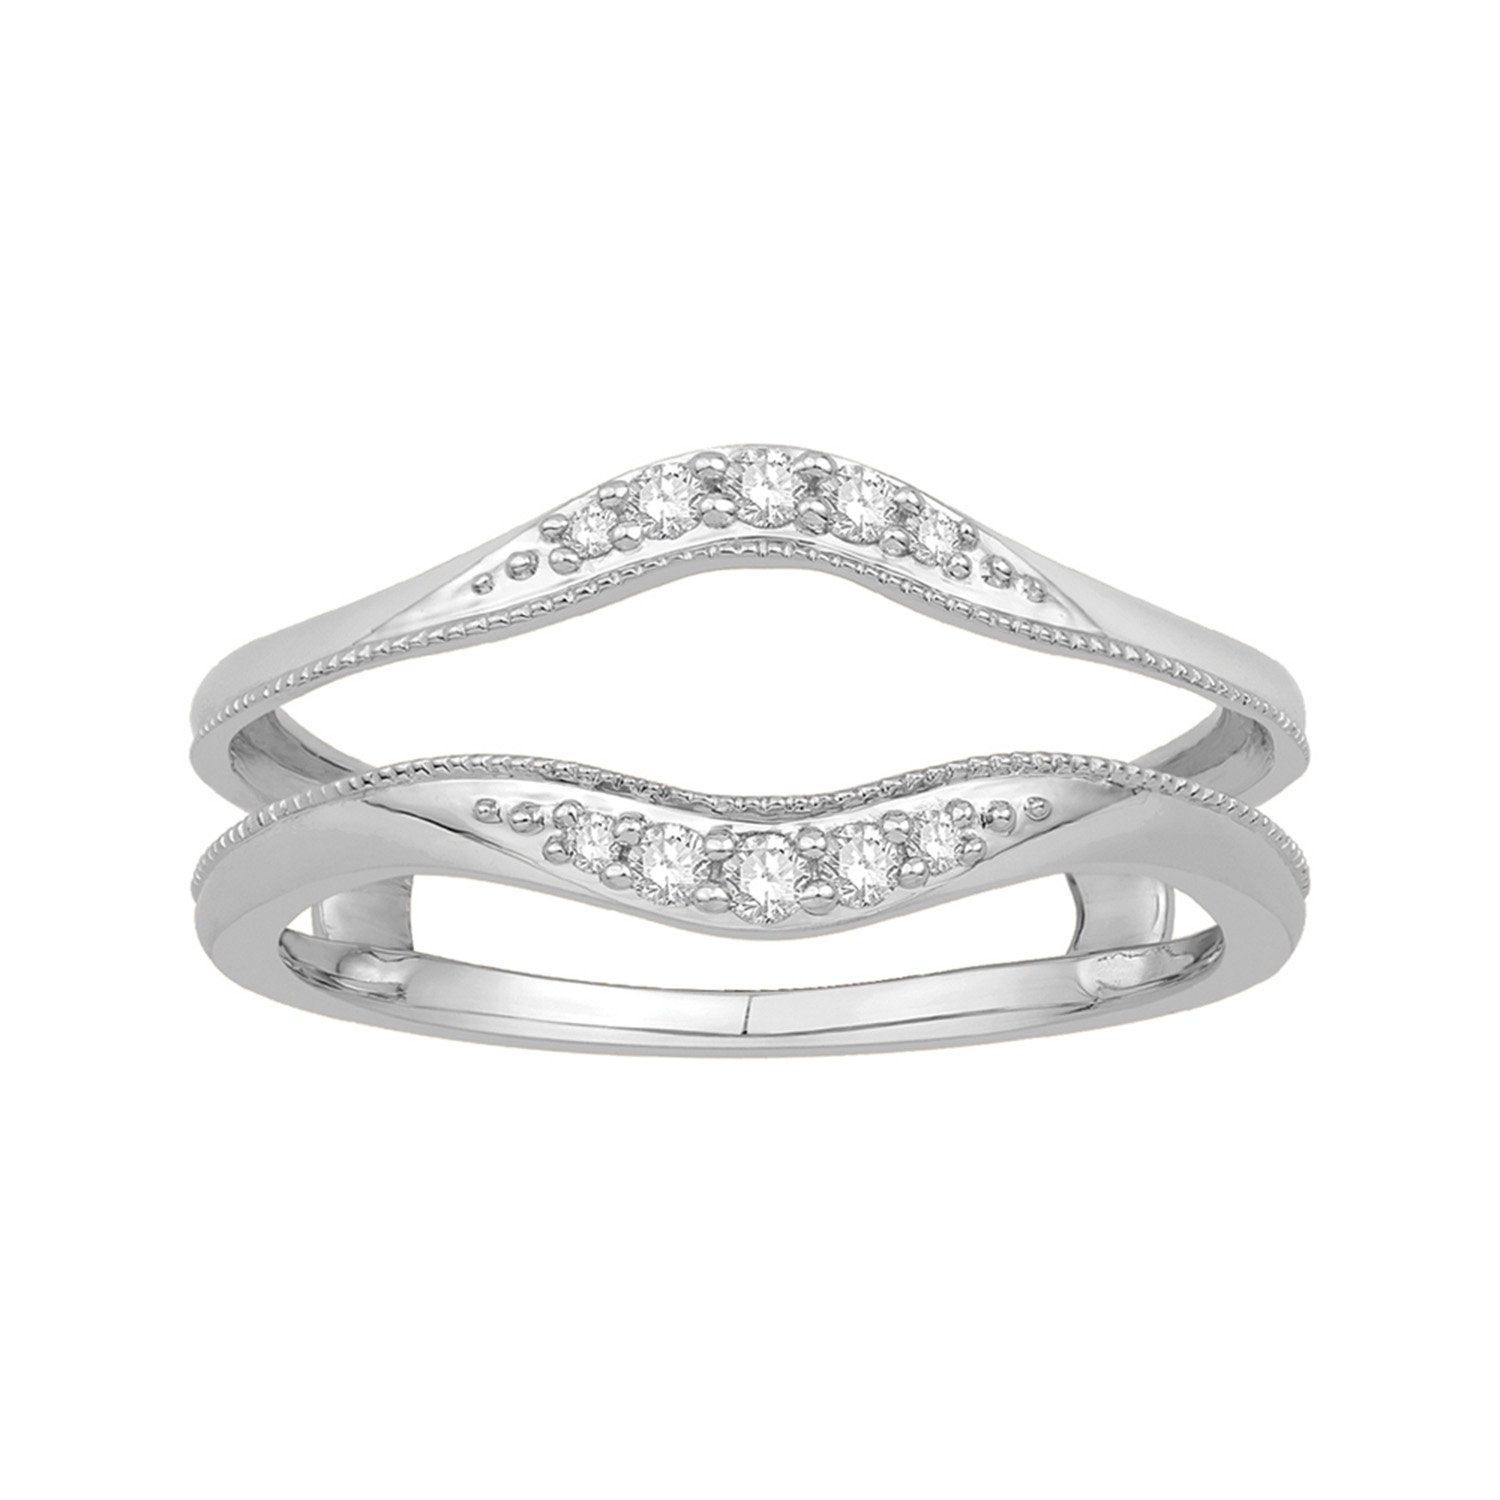 1/8 ct. tw. Diamond Ring Guard in 10K White Gold the white guard